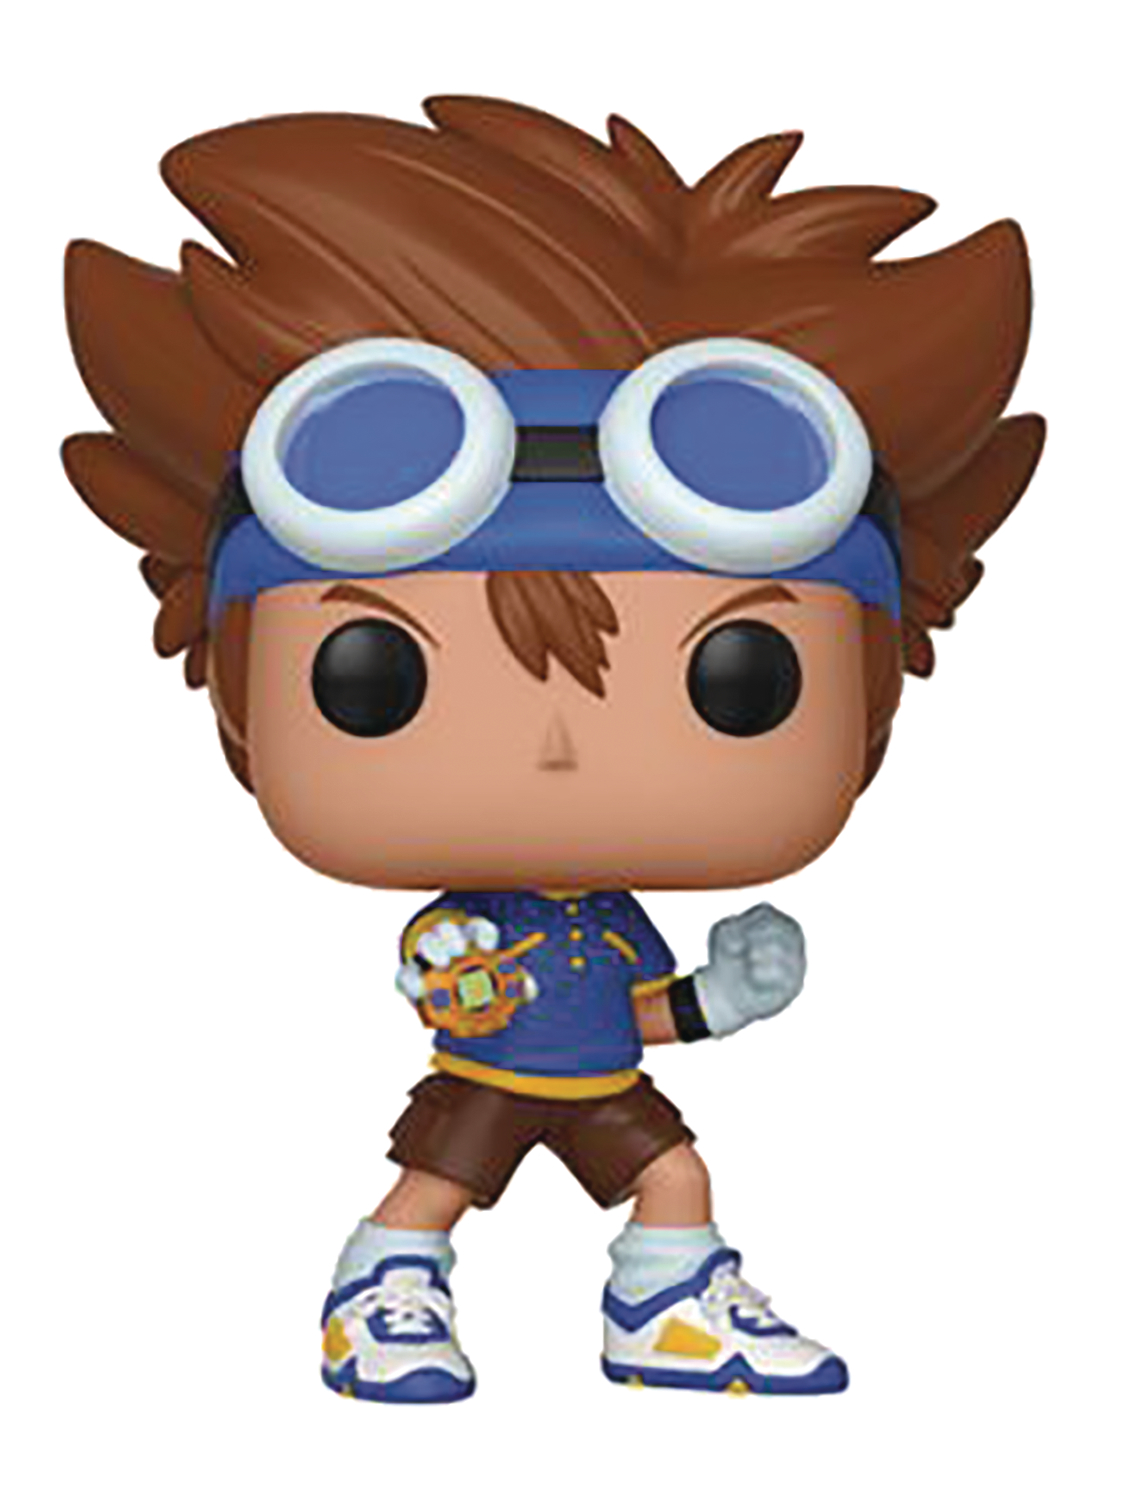 POP ANIMATION DIGIMON S1 TAI VINYL FIGURE